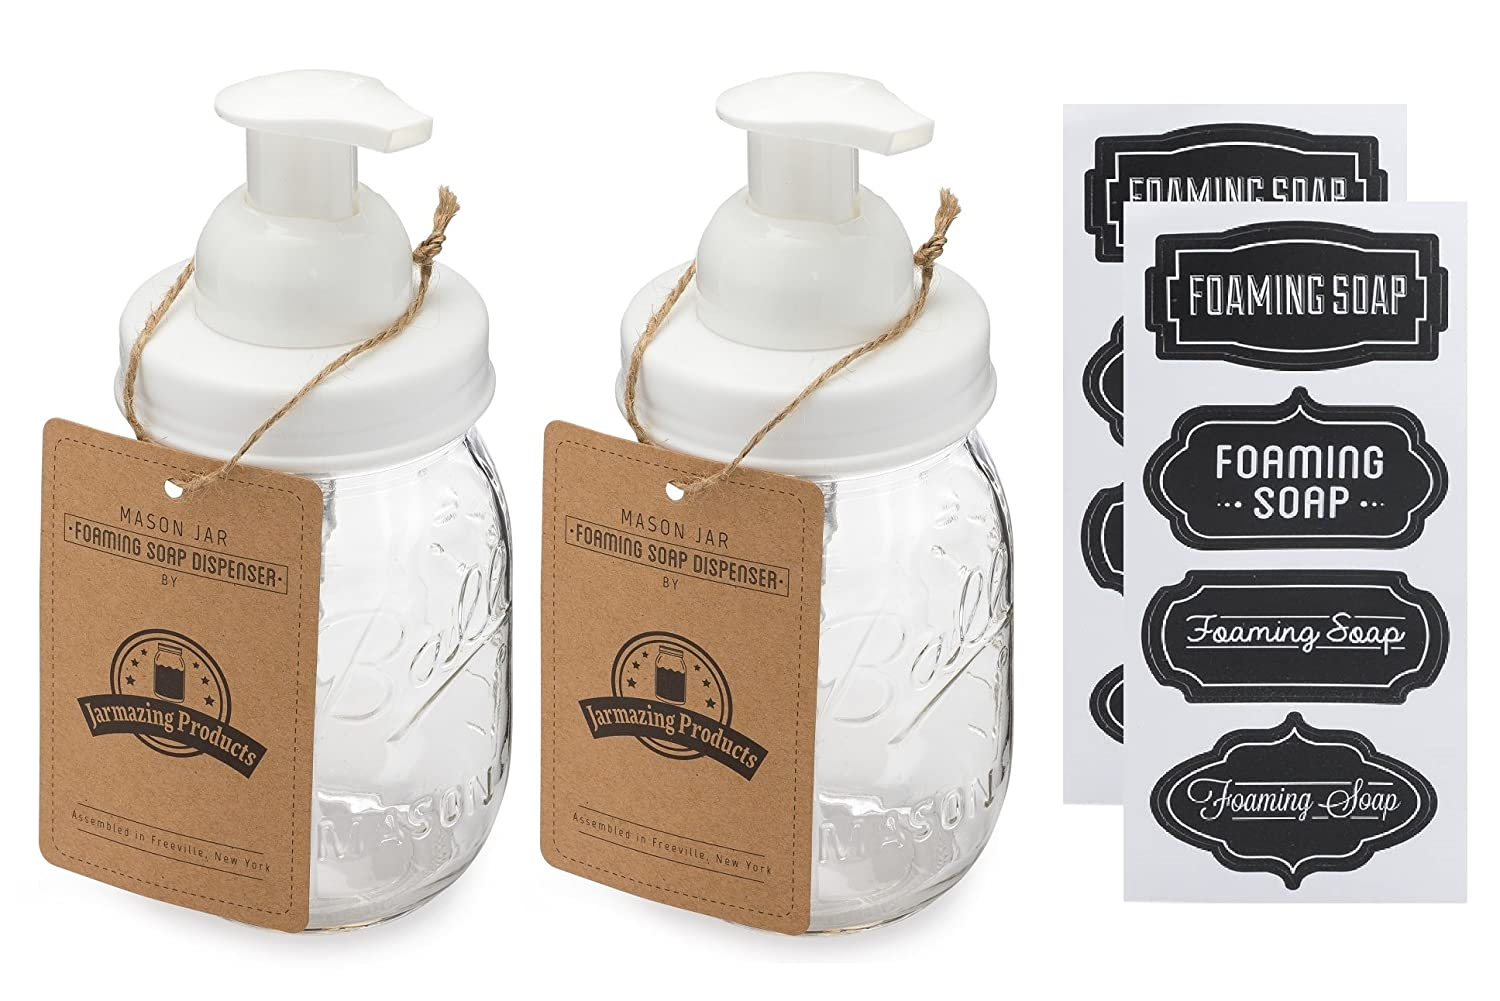 With 16 Ounce Ball Mason Jar Jarmazing Products Mason Jar Foaming Soap Dispenser Two Pack! White